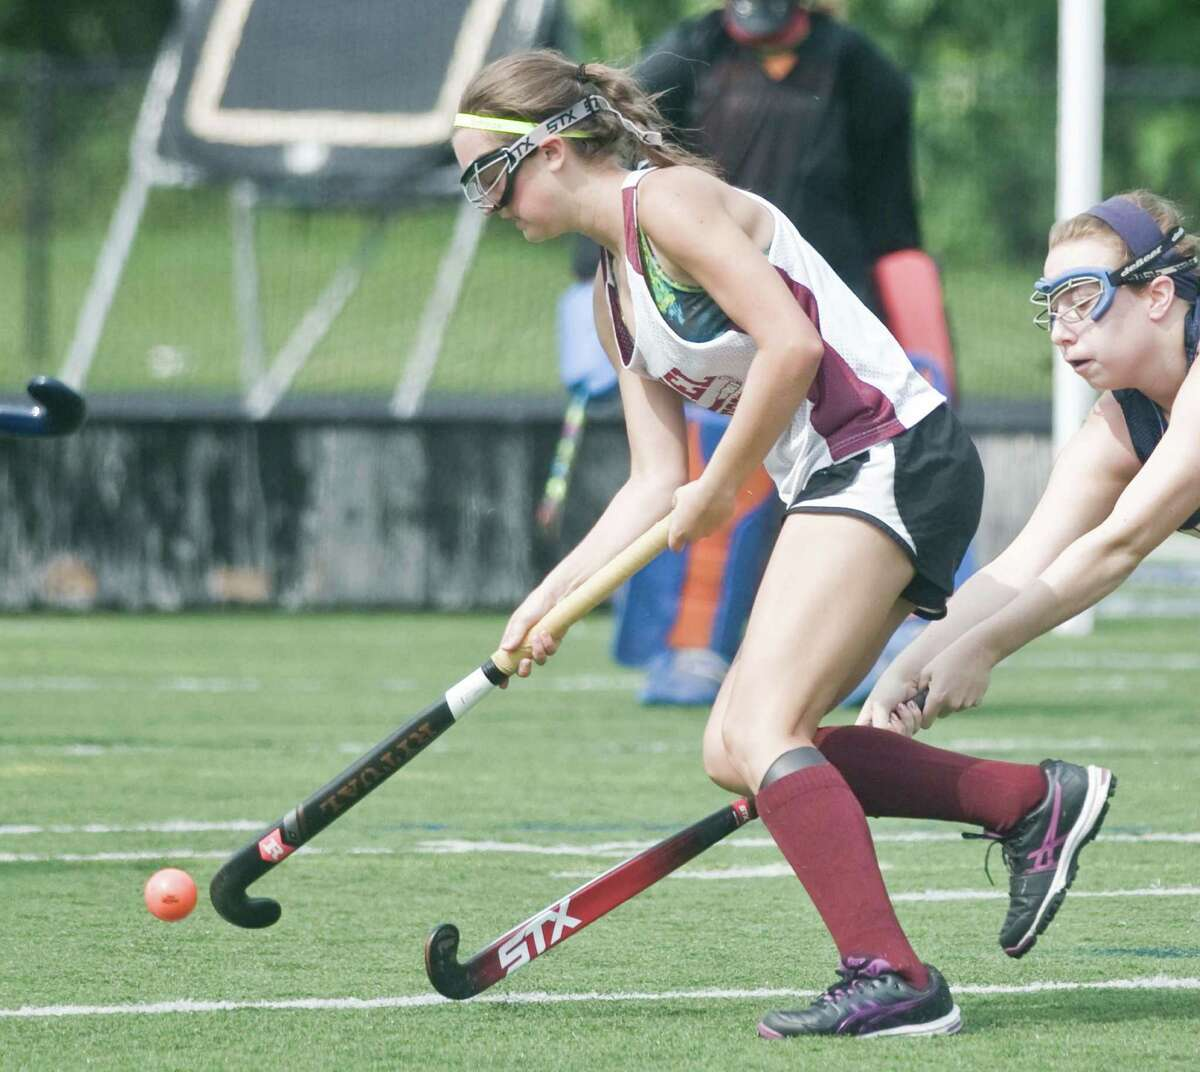 Bethel High School's Samantha Segiet moves the ball during the high school field hockey jamboree at Immaculate High School. Sunday, Aug. 30, 2015